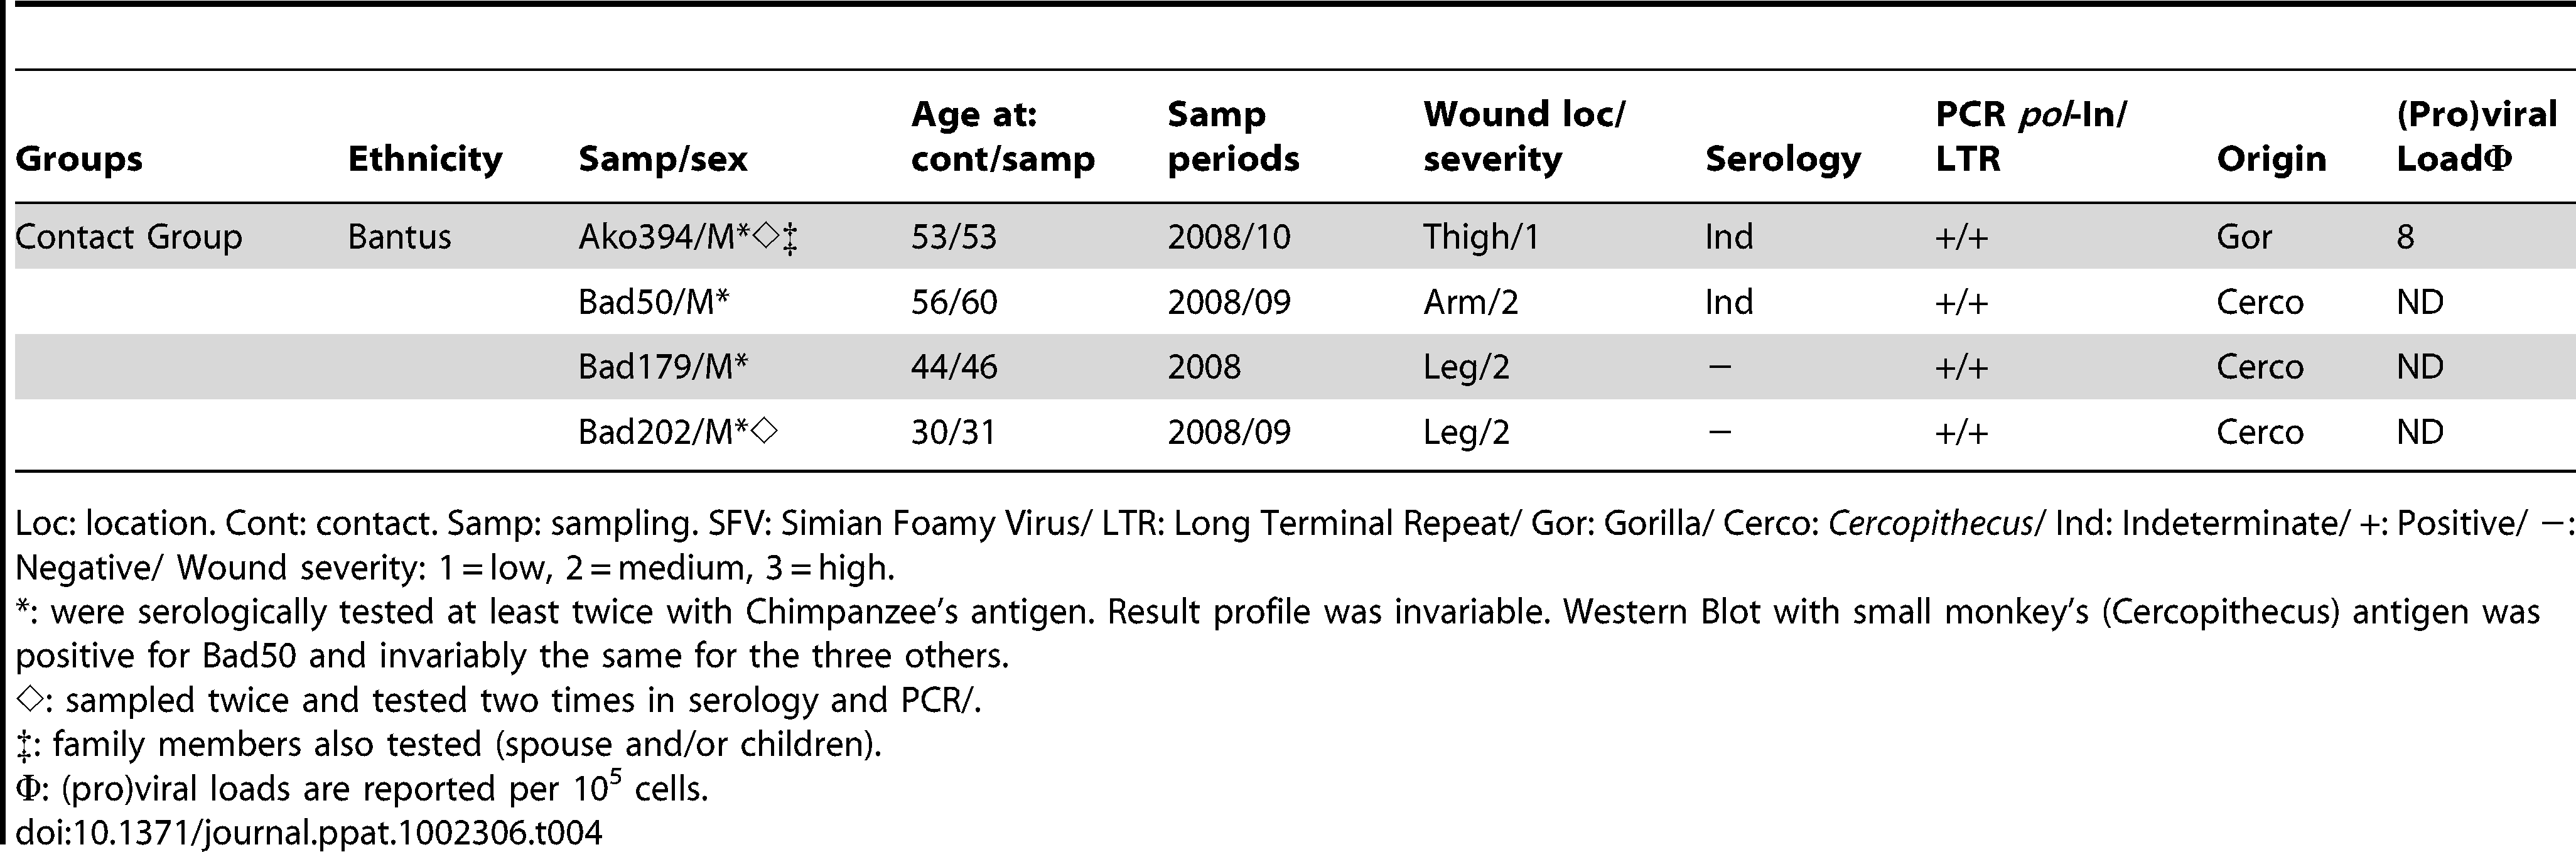 "Epidemiological and ""non-classical"" biological features of SFV infected humans in contact group."